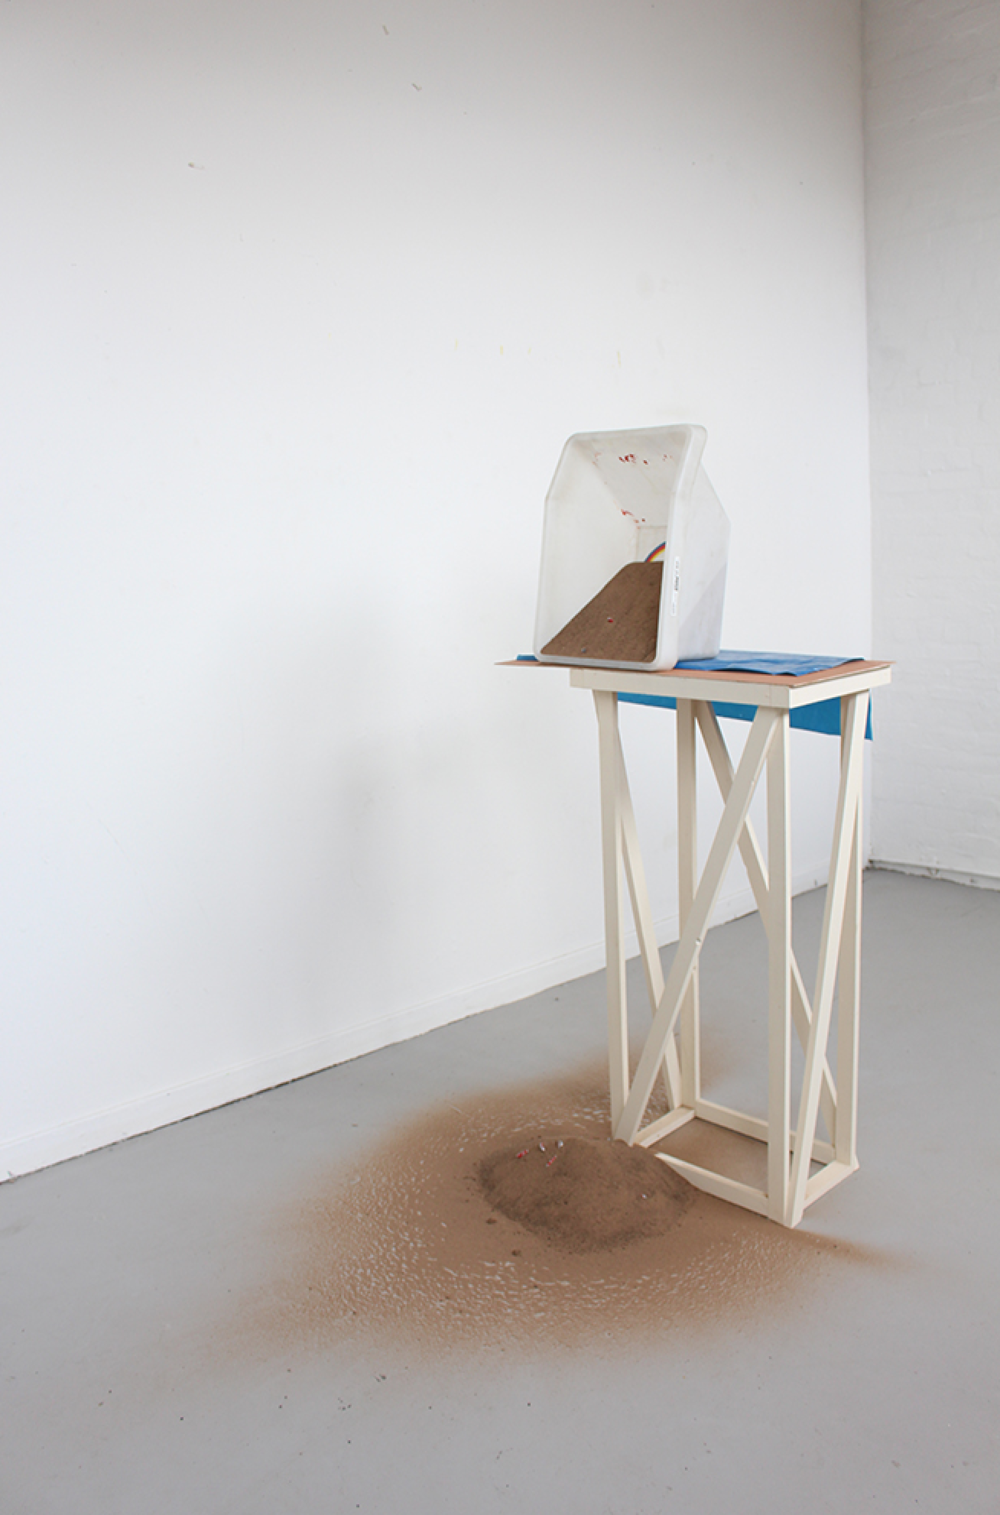 We've promised to go to Miami,  plastic box from ikea, vinyl bag, wood, sand, bottle cap of Budweiser, 2015 @DongKwang Jo